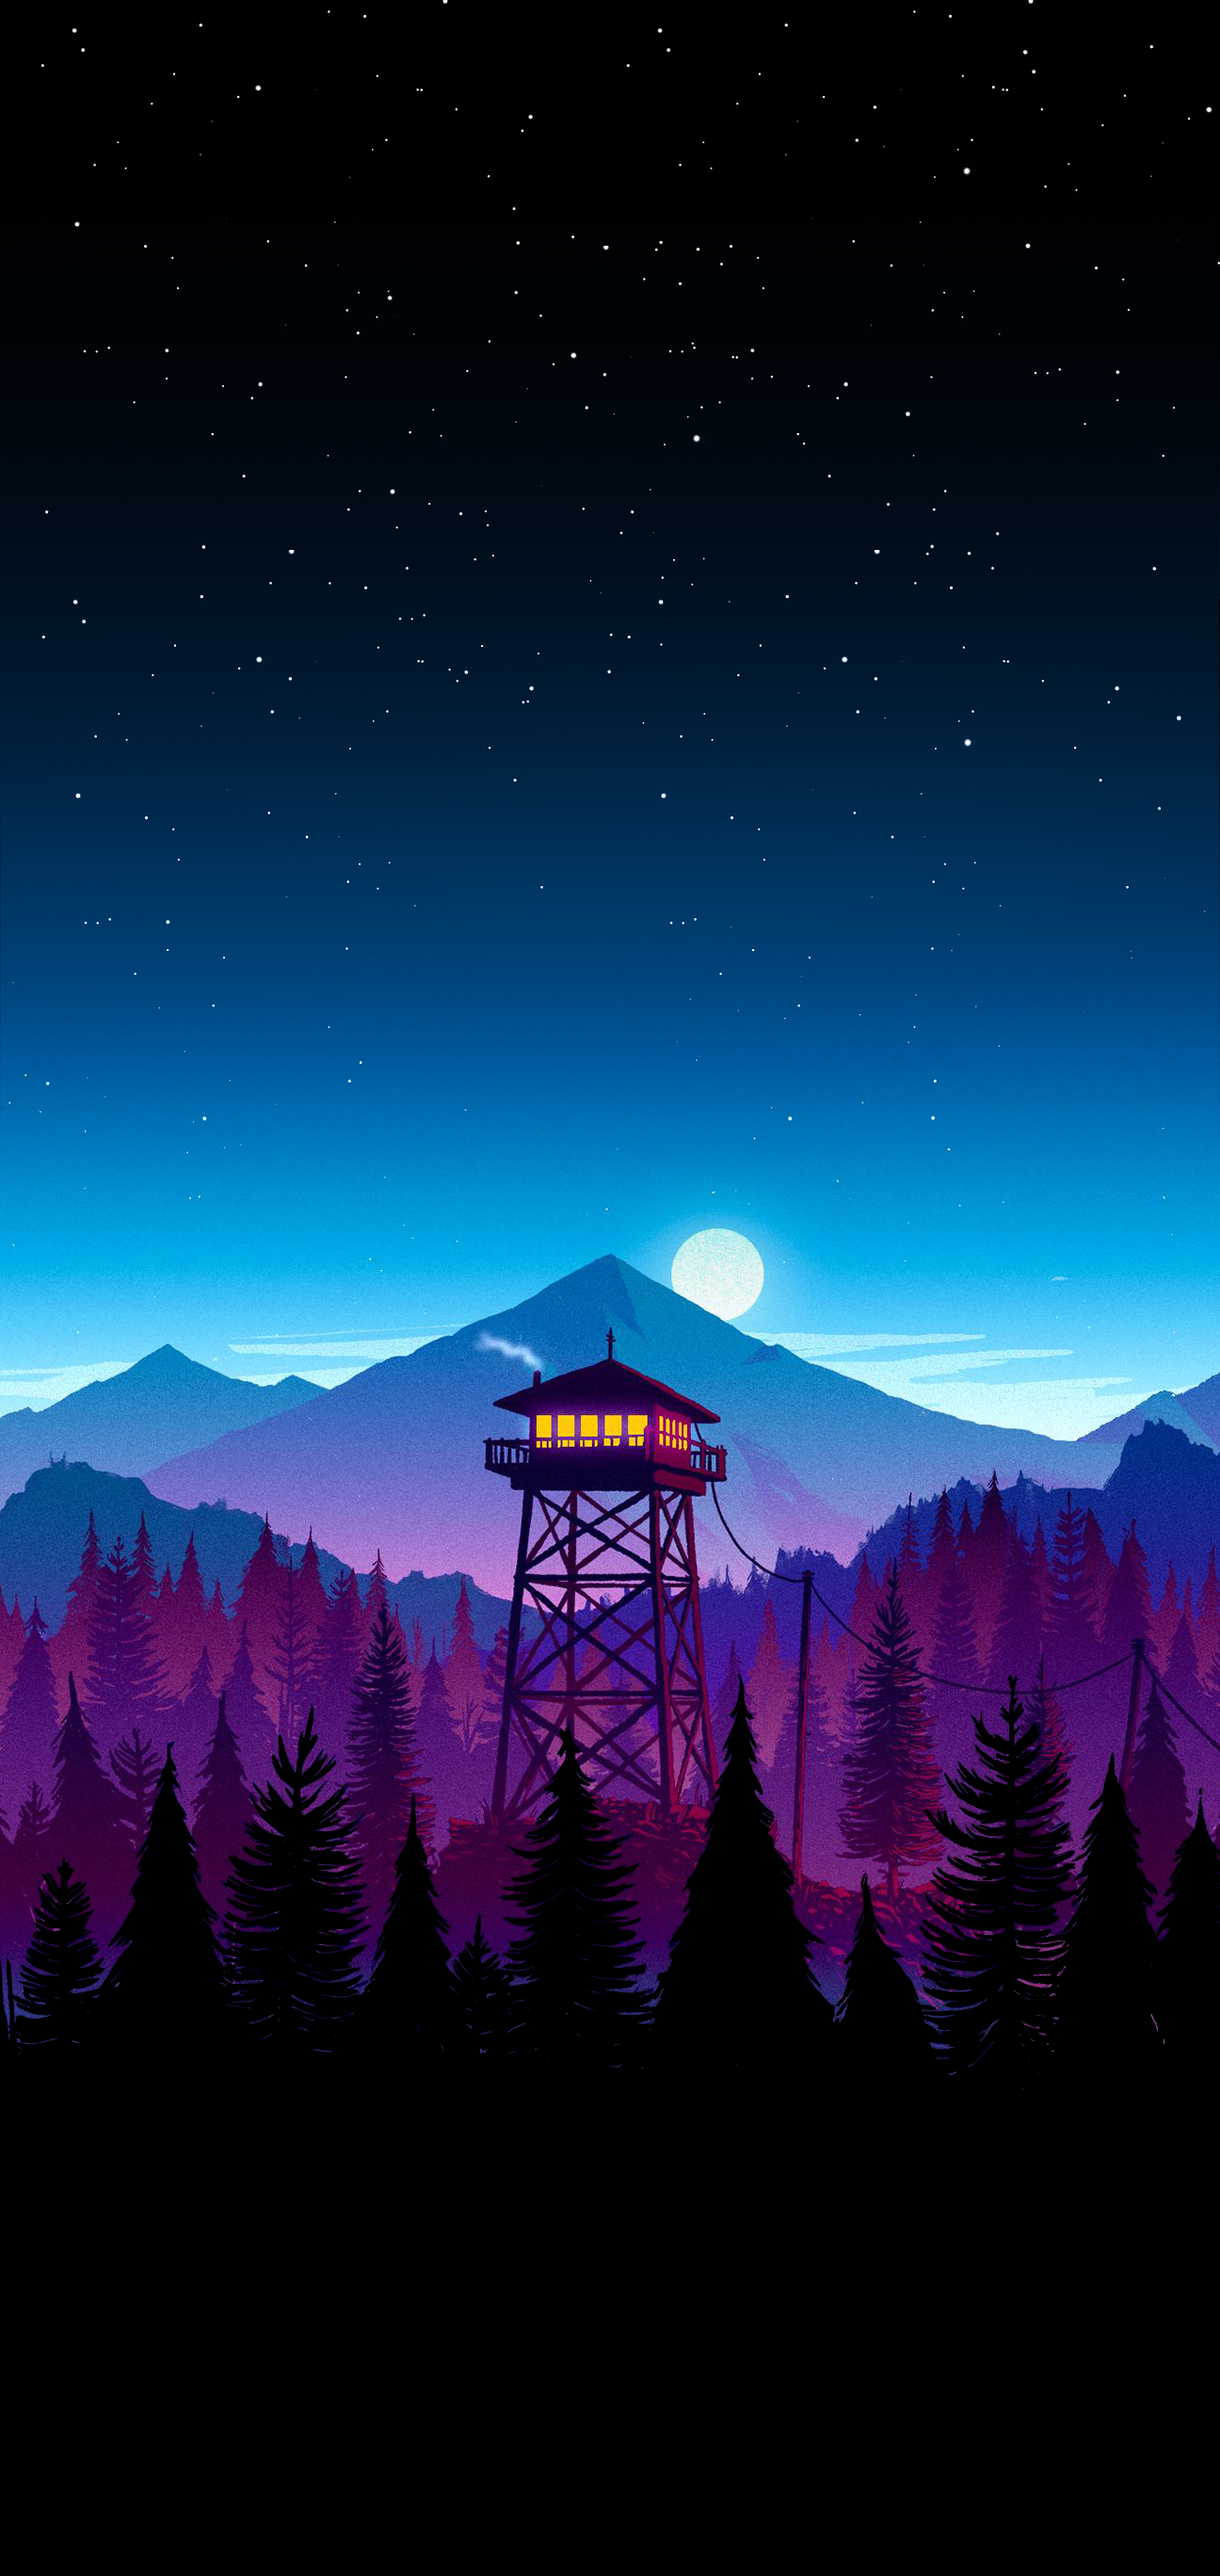 Firewatch Wallpaper I Made For My Iphone X Download At Http Www Myfavwallpaper Com 2018 07 Fire Fotografia De Paisagem Wallpapers Paisagens Paisagem Desenho